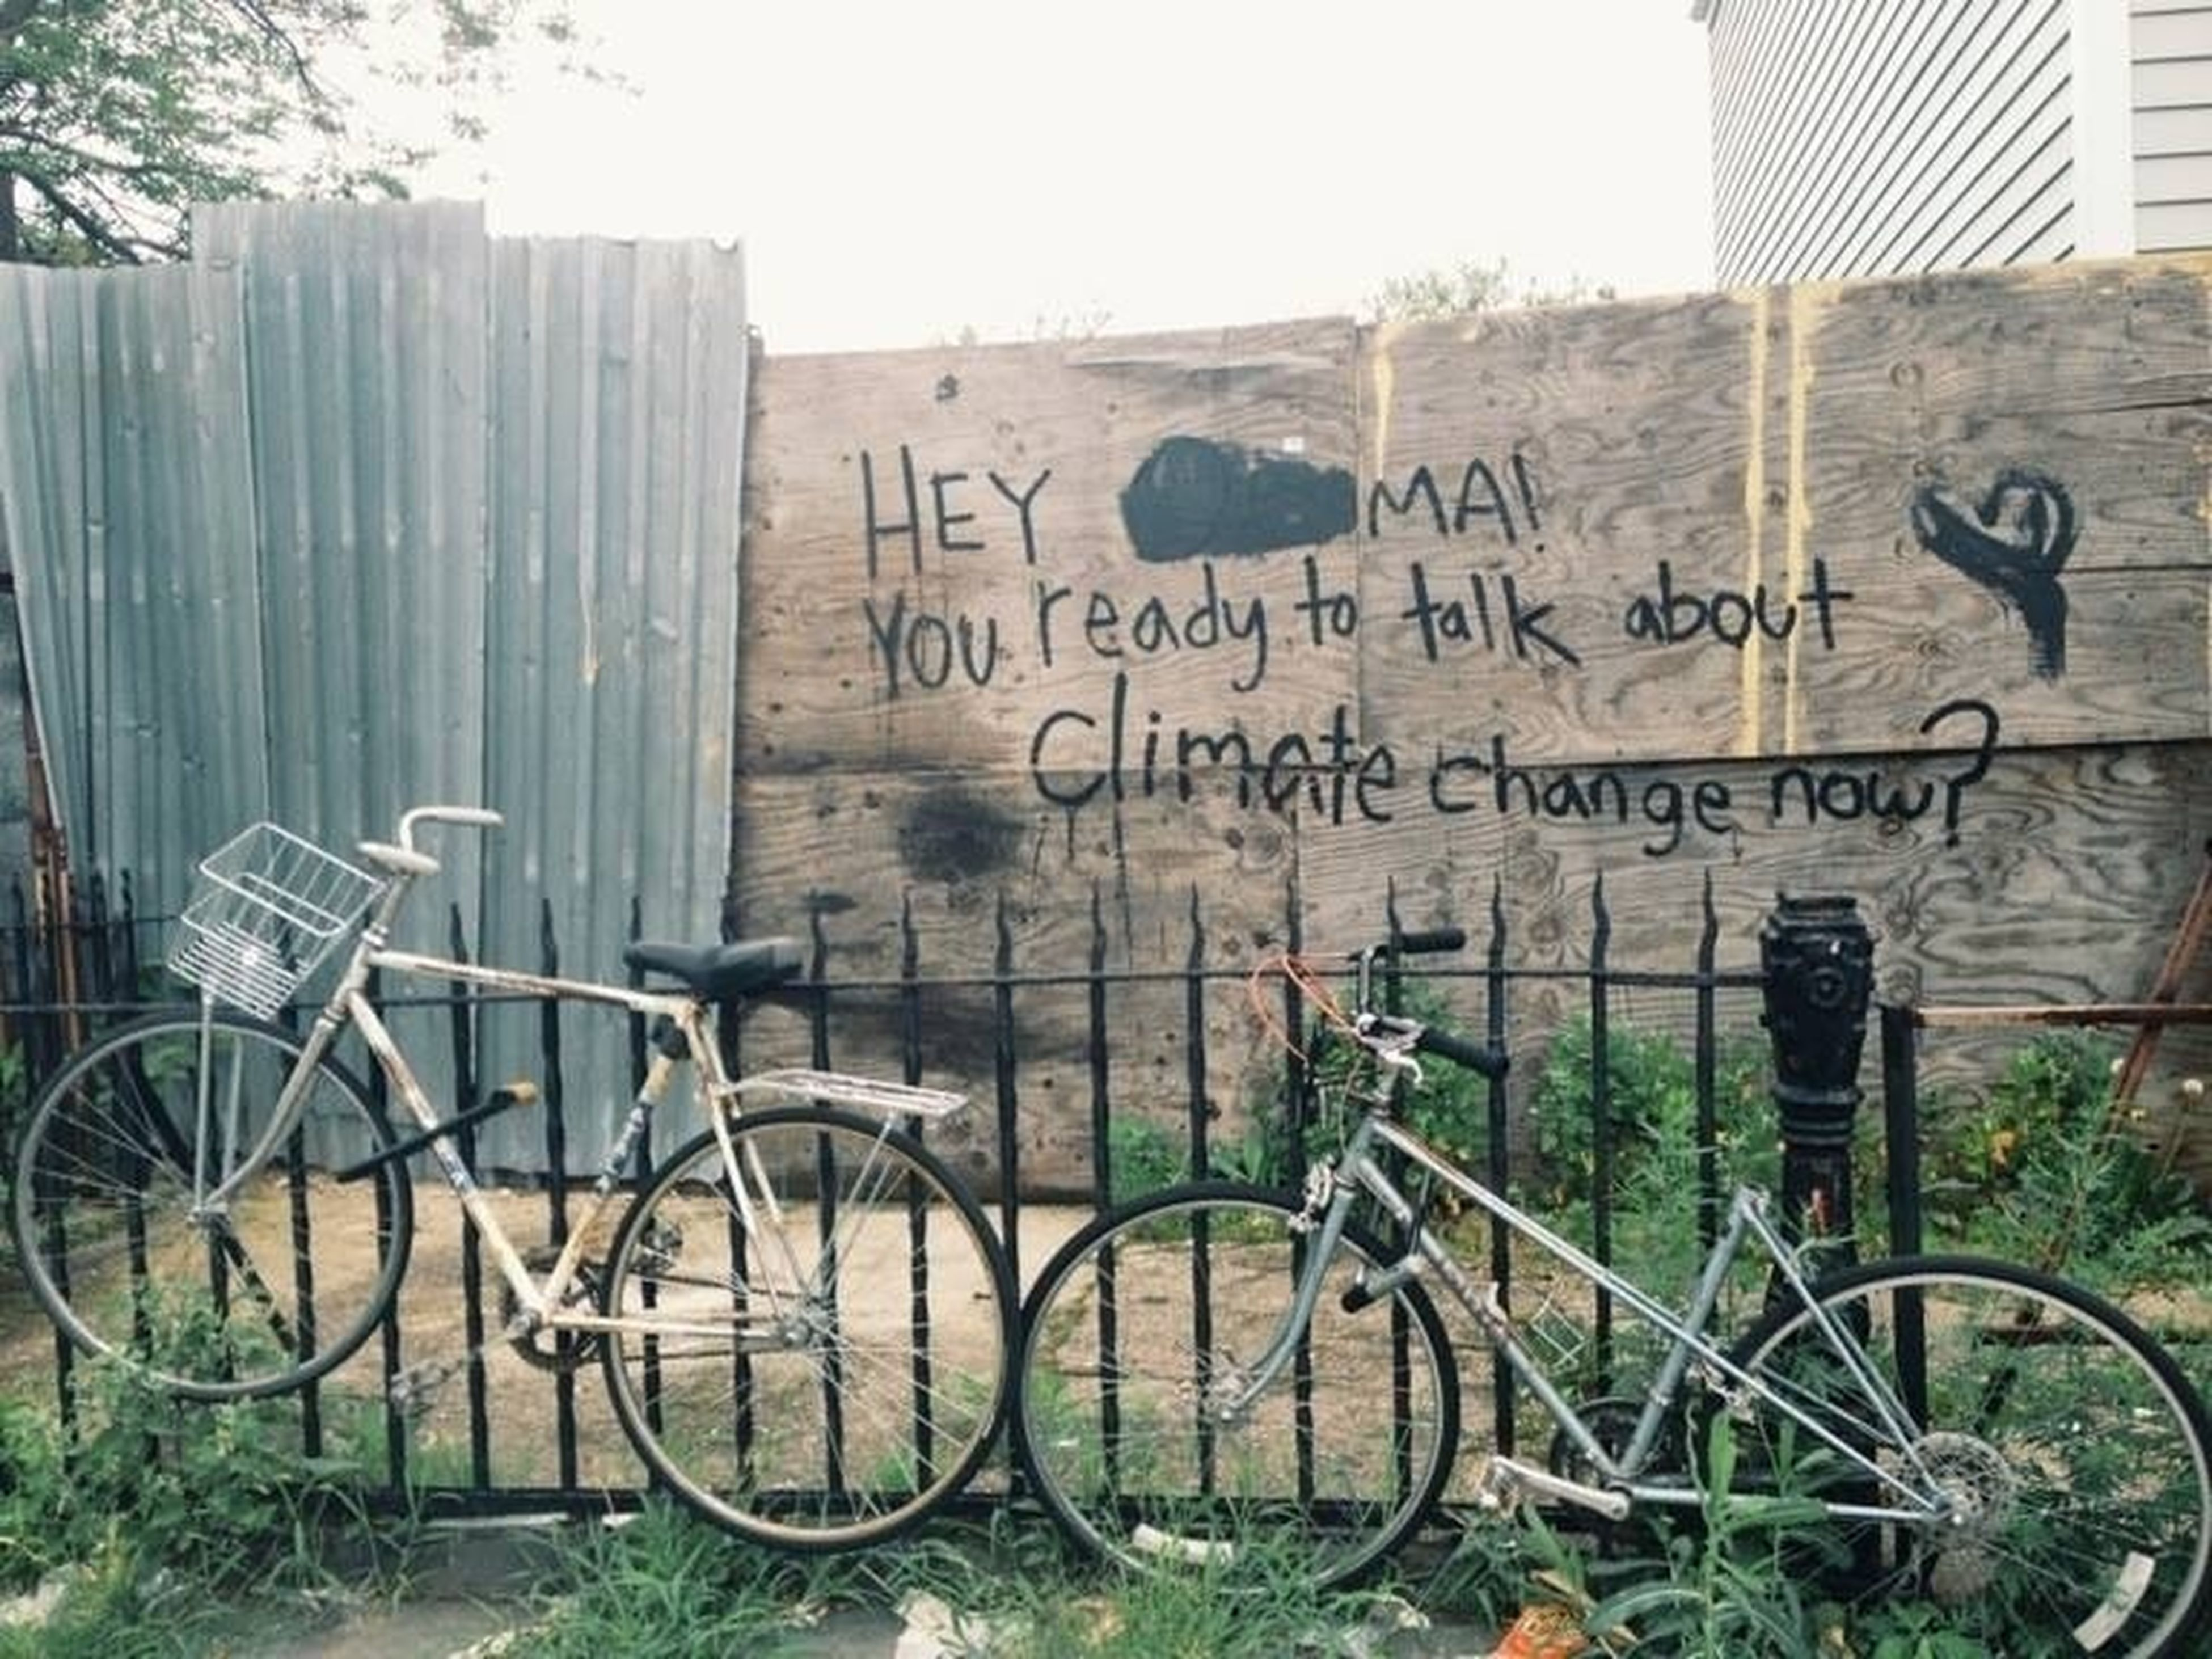 bicycle, architecture, transportation, built structure, text, building exterior, mode of transport, land vehicle, wall - building feature, parked, stationary, western script, parking, day, no people, graffiti, outdoors, communication, wall, fence